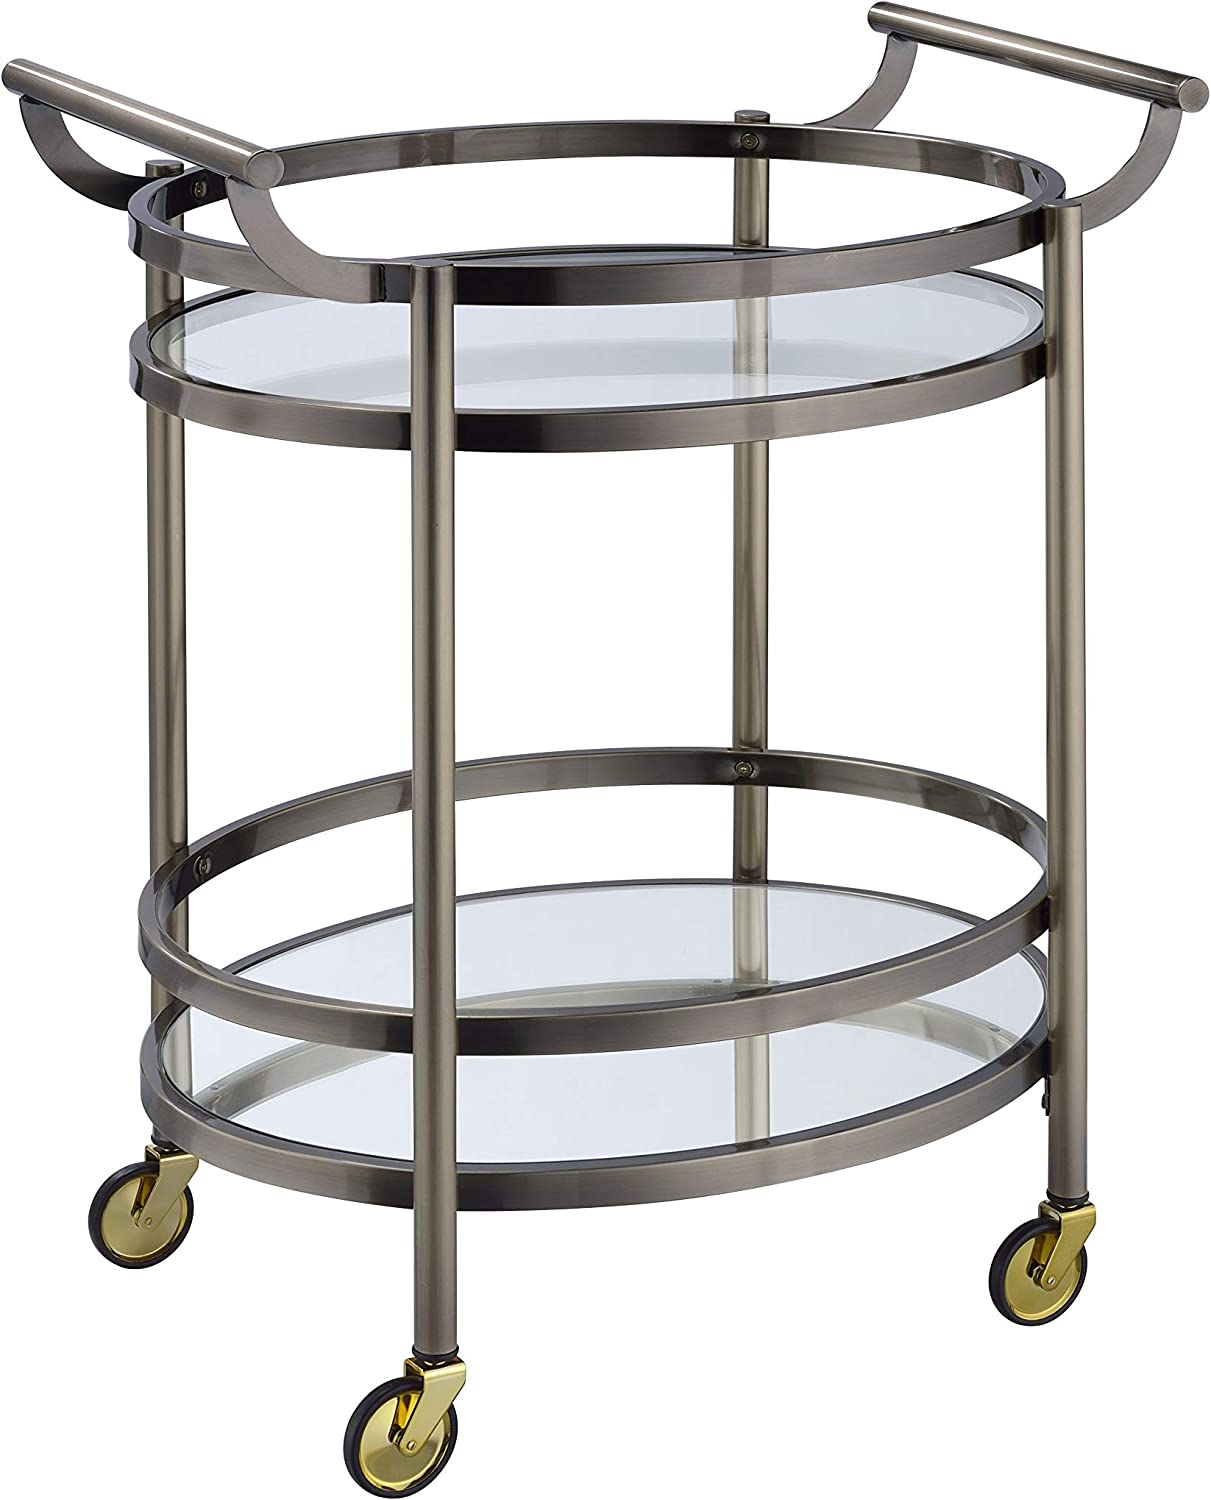 N-Voss 66AM98190 27 Serving Cart with 5mm Clear Tempered Glass Top Metal Frame and Handles in Brushed Bronze Finish Mirrored Bottom Shelf Oval Shape Caster Wheels